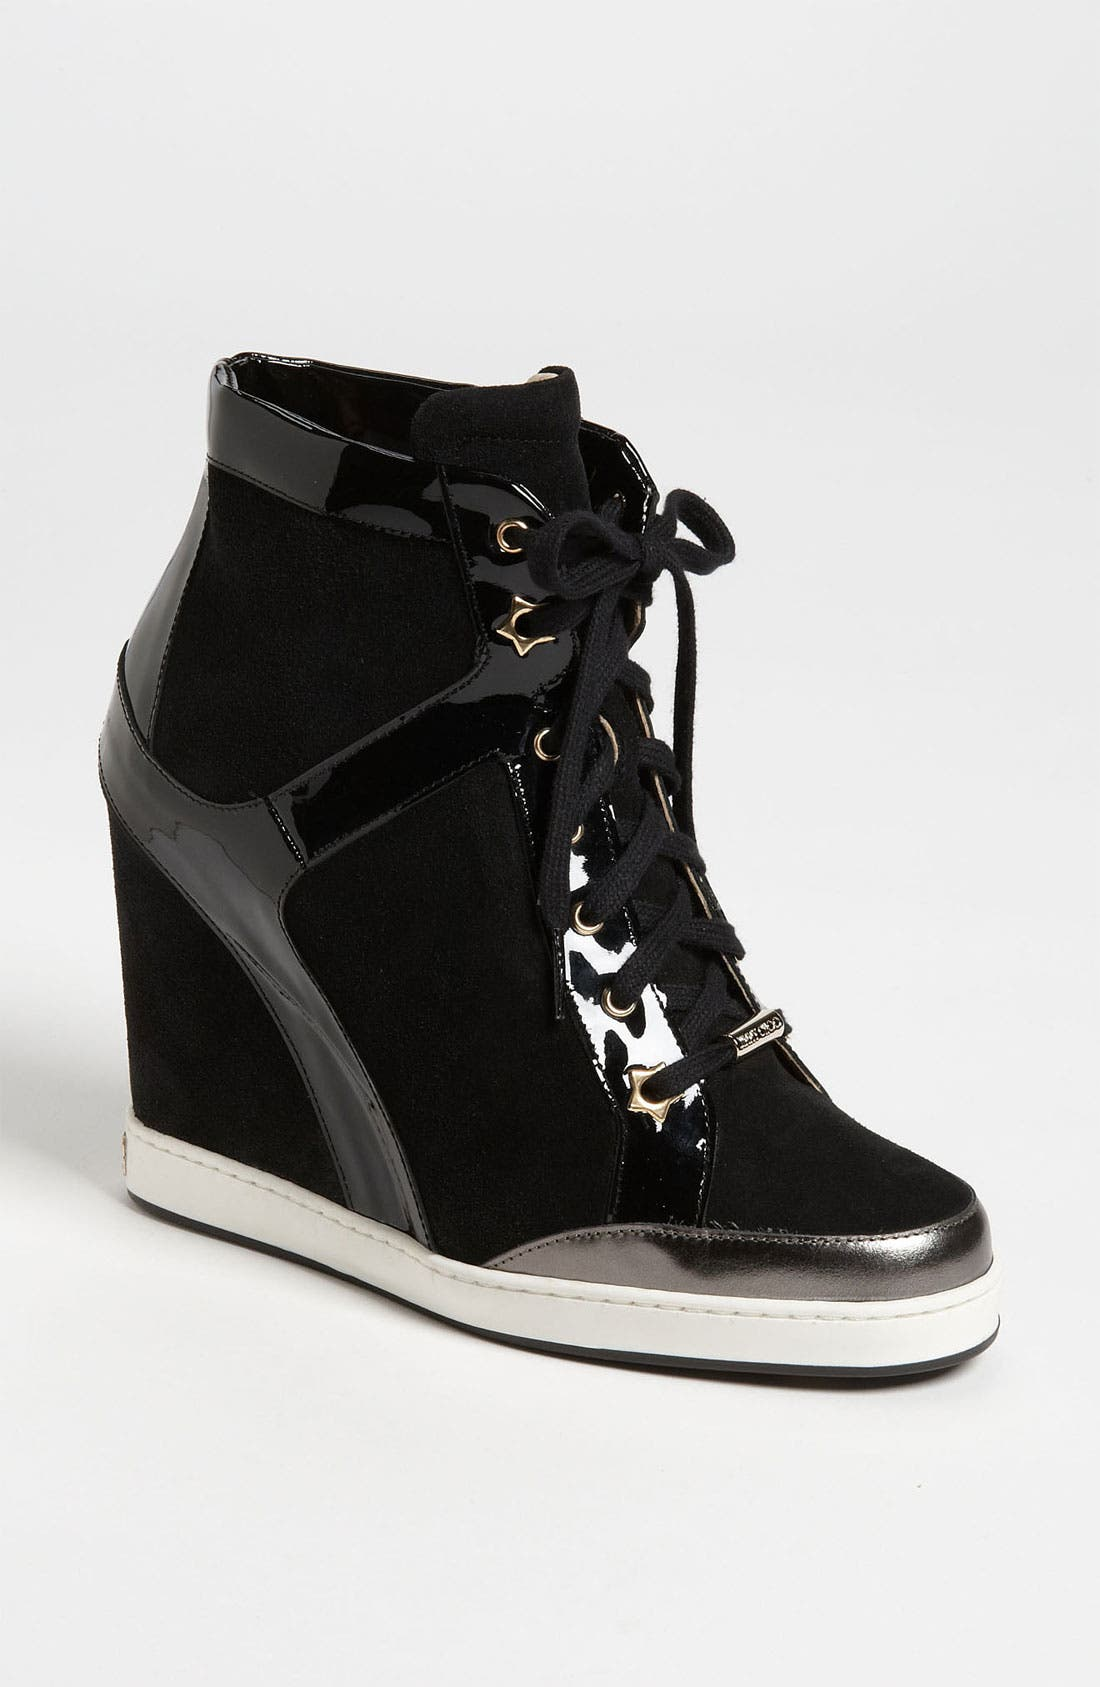 JIMMY CHOO 'Panama' Wedge Sneaker, Main, color, 001